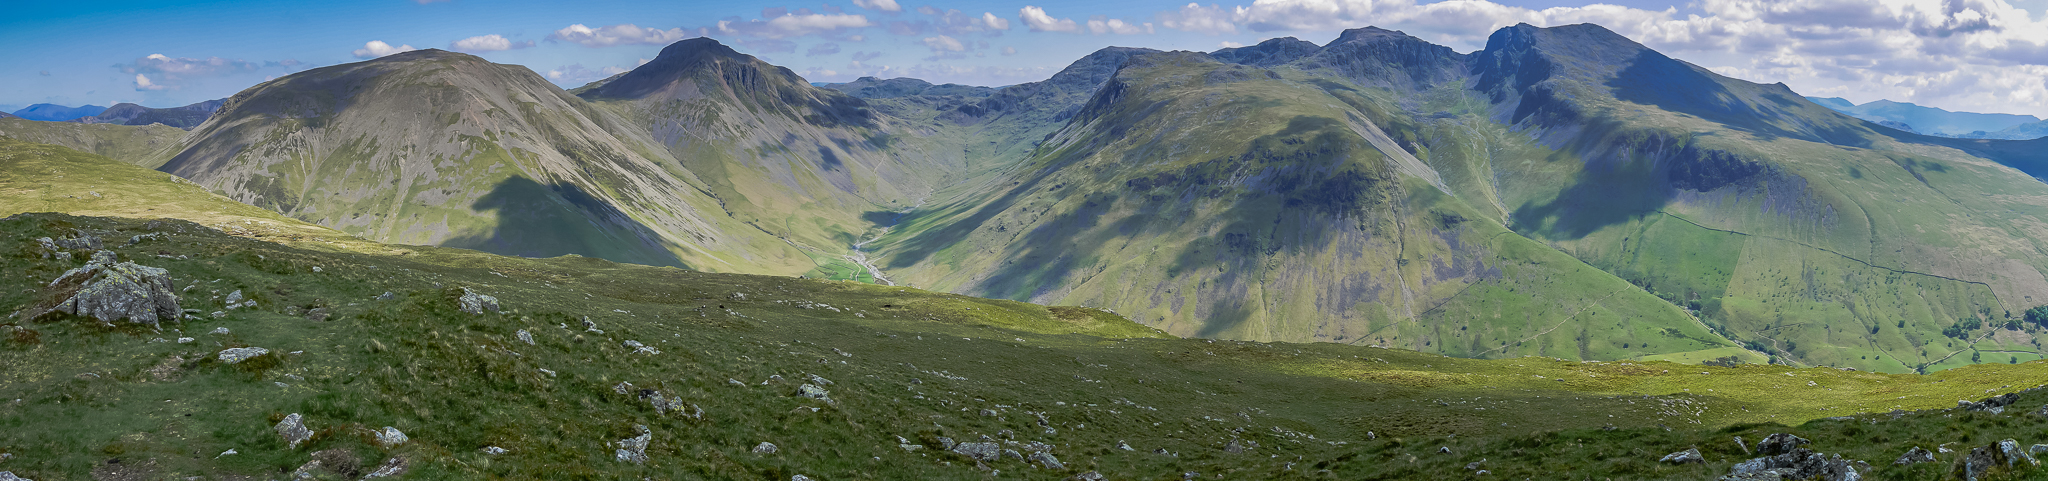 Scafell Massive Pano (1 of 1)